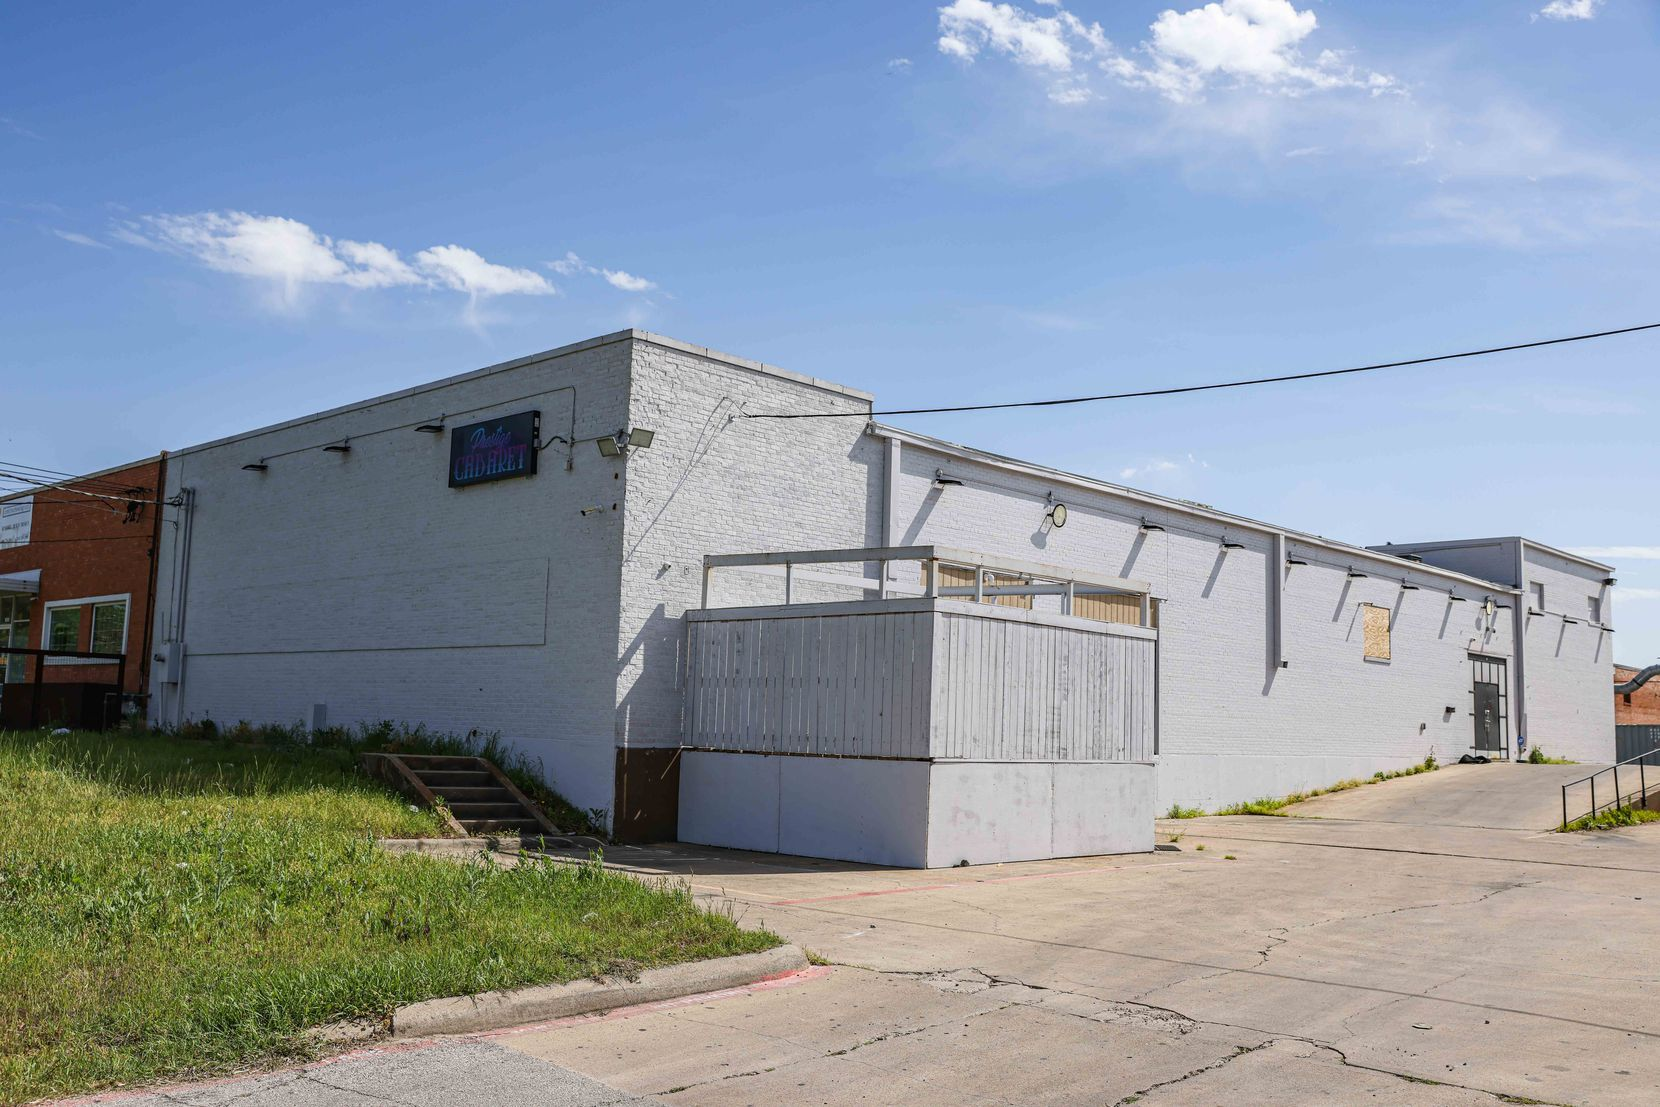 A property on Sovereign Row in northwest Dallas used to be a strip club called Black Diamonds. It was the target of an attempted arson in 2016.